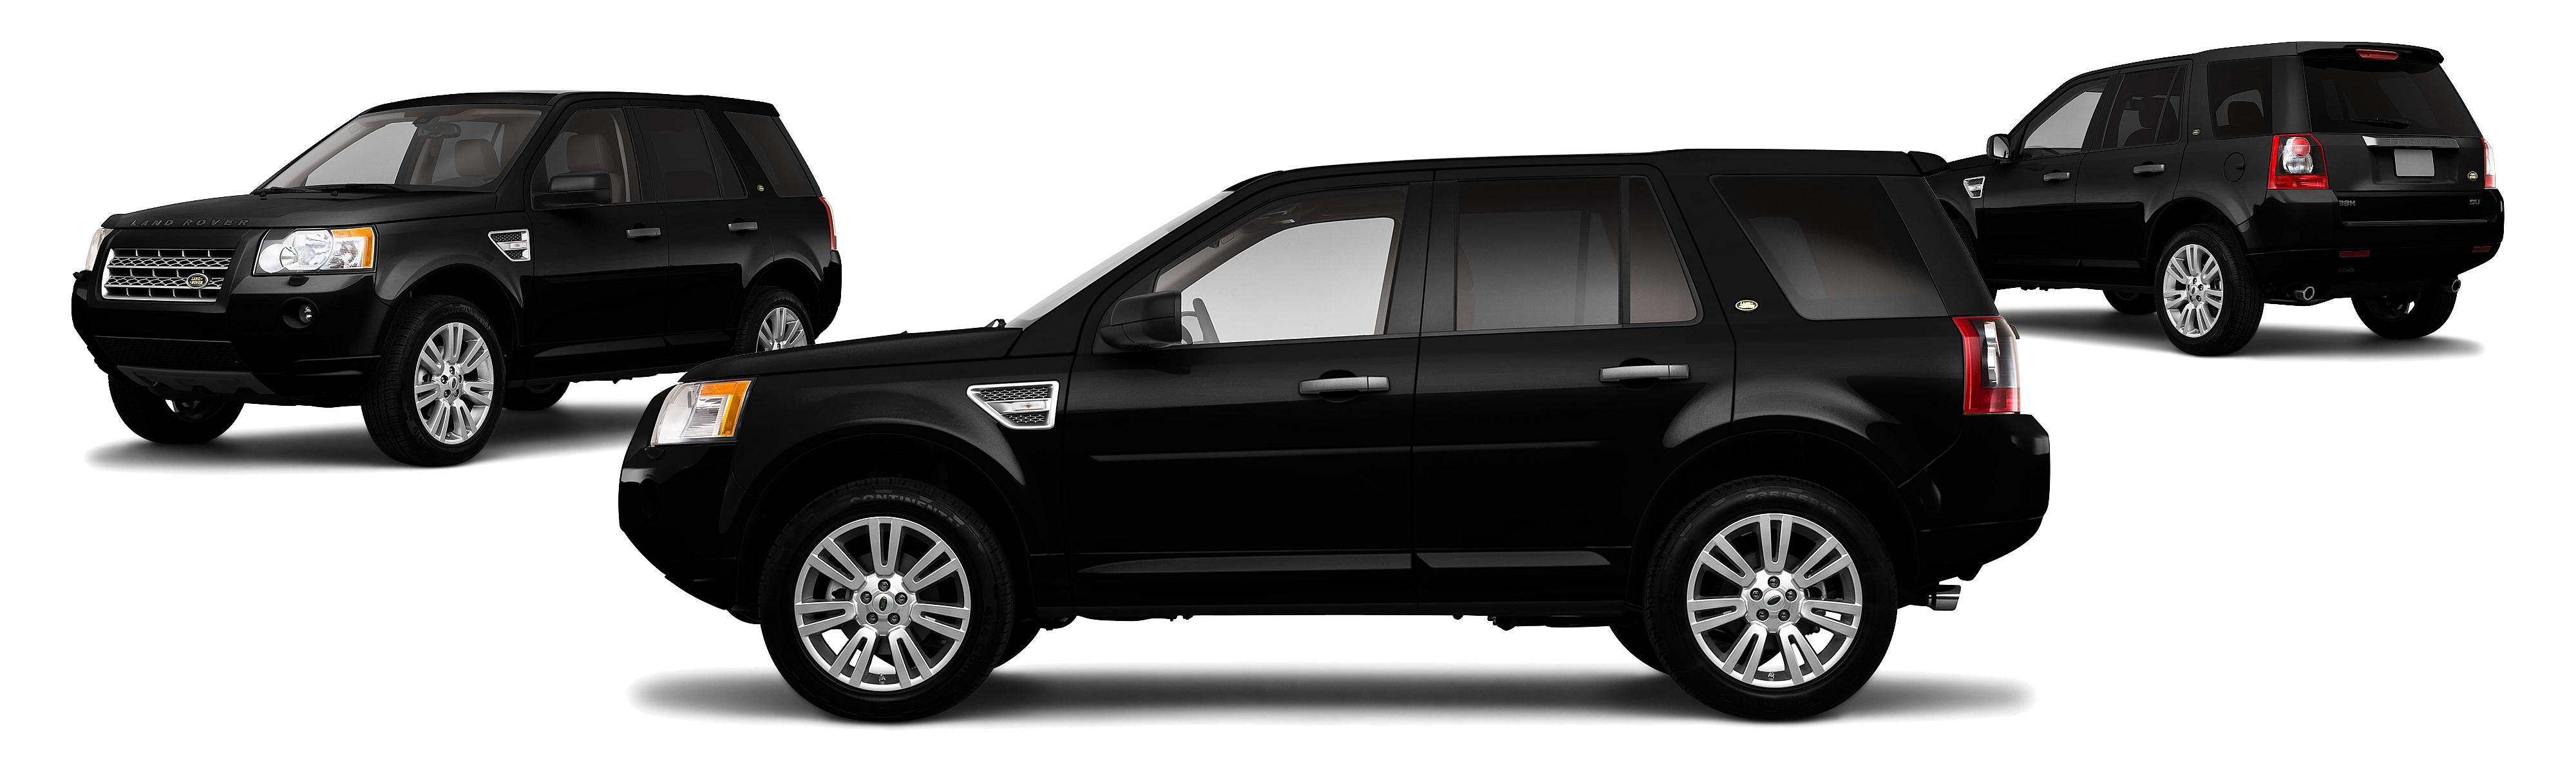 front specs photos prices ratings l car connection and the overview landrover review exterior land view rover used angular